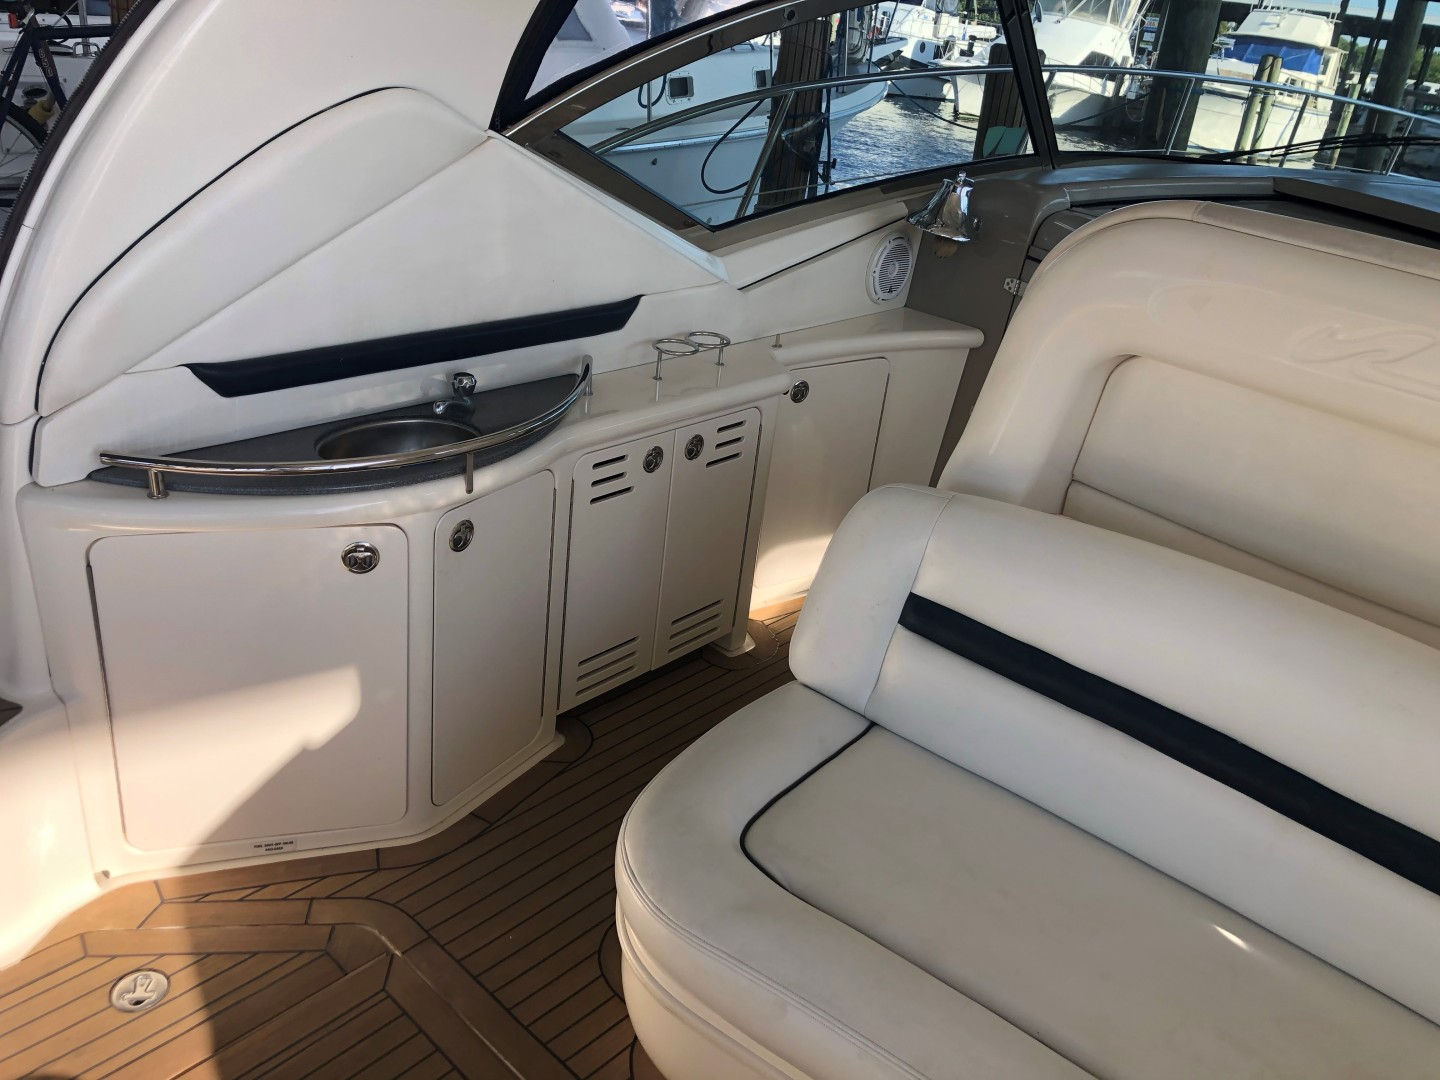 Sea Ray 42 - The Beat Goes On - Entry